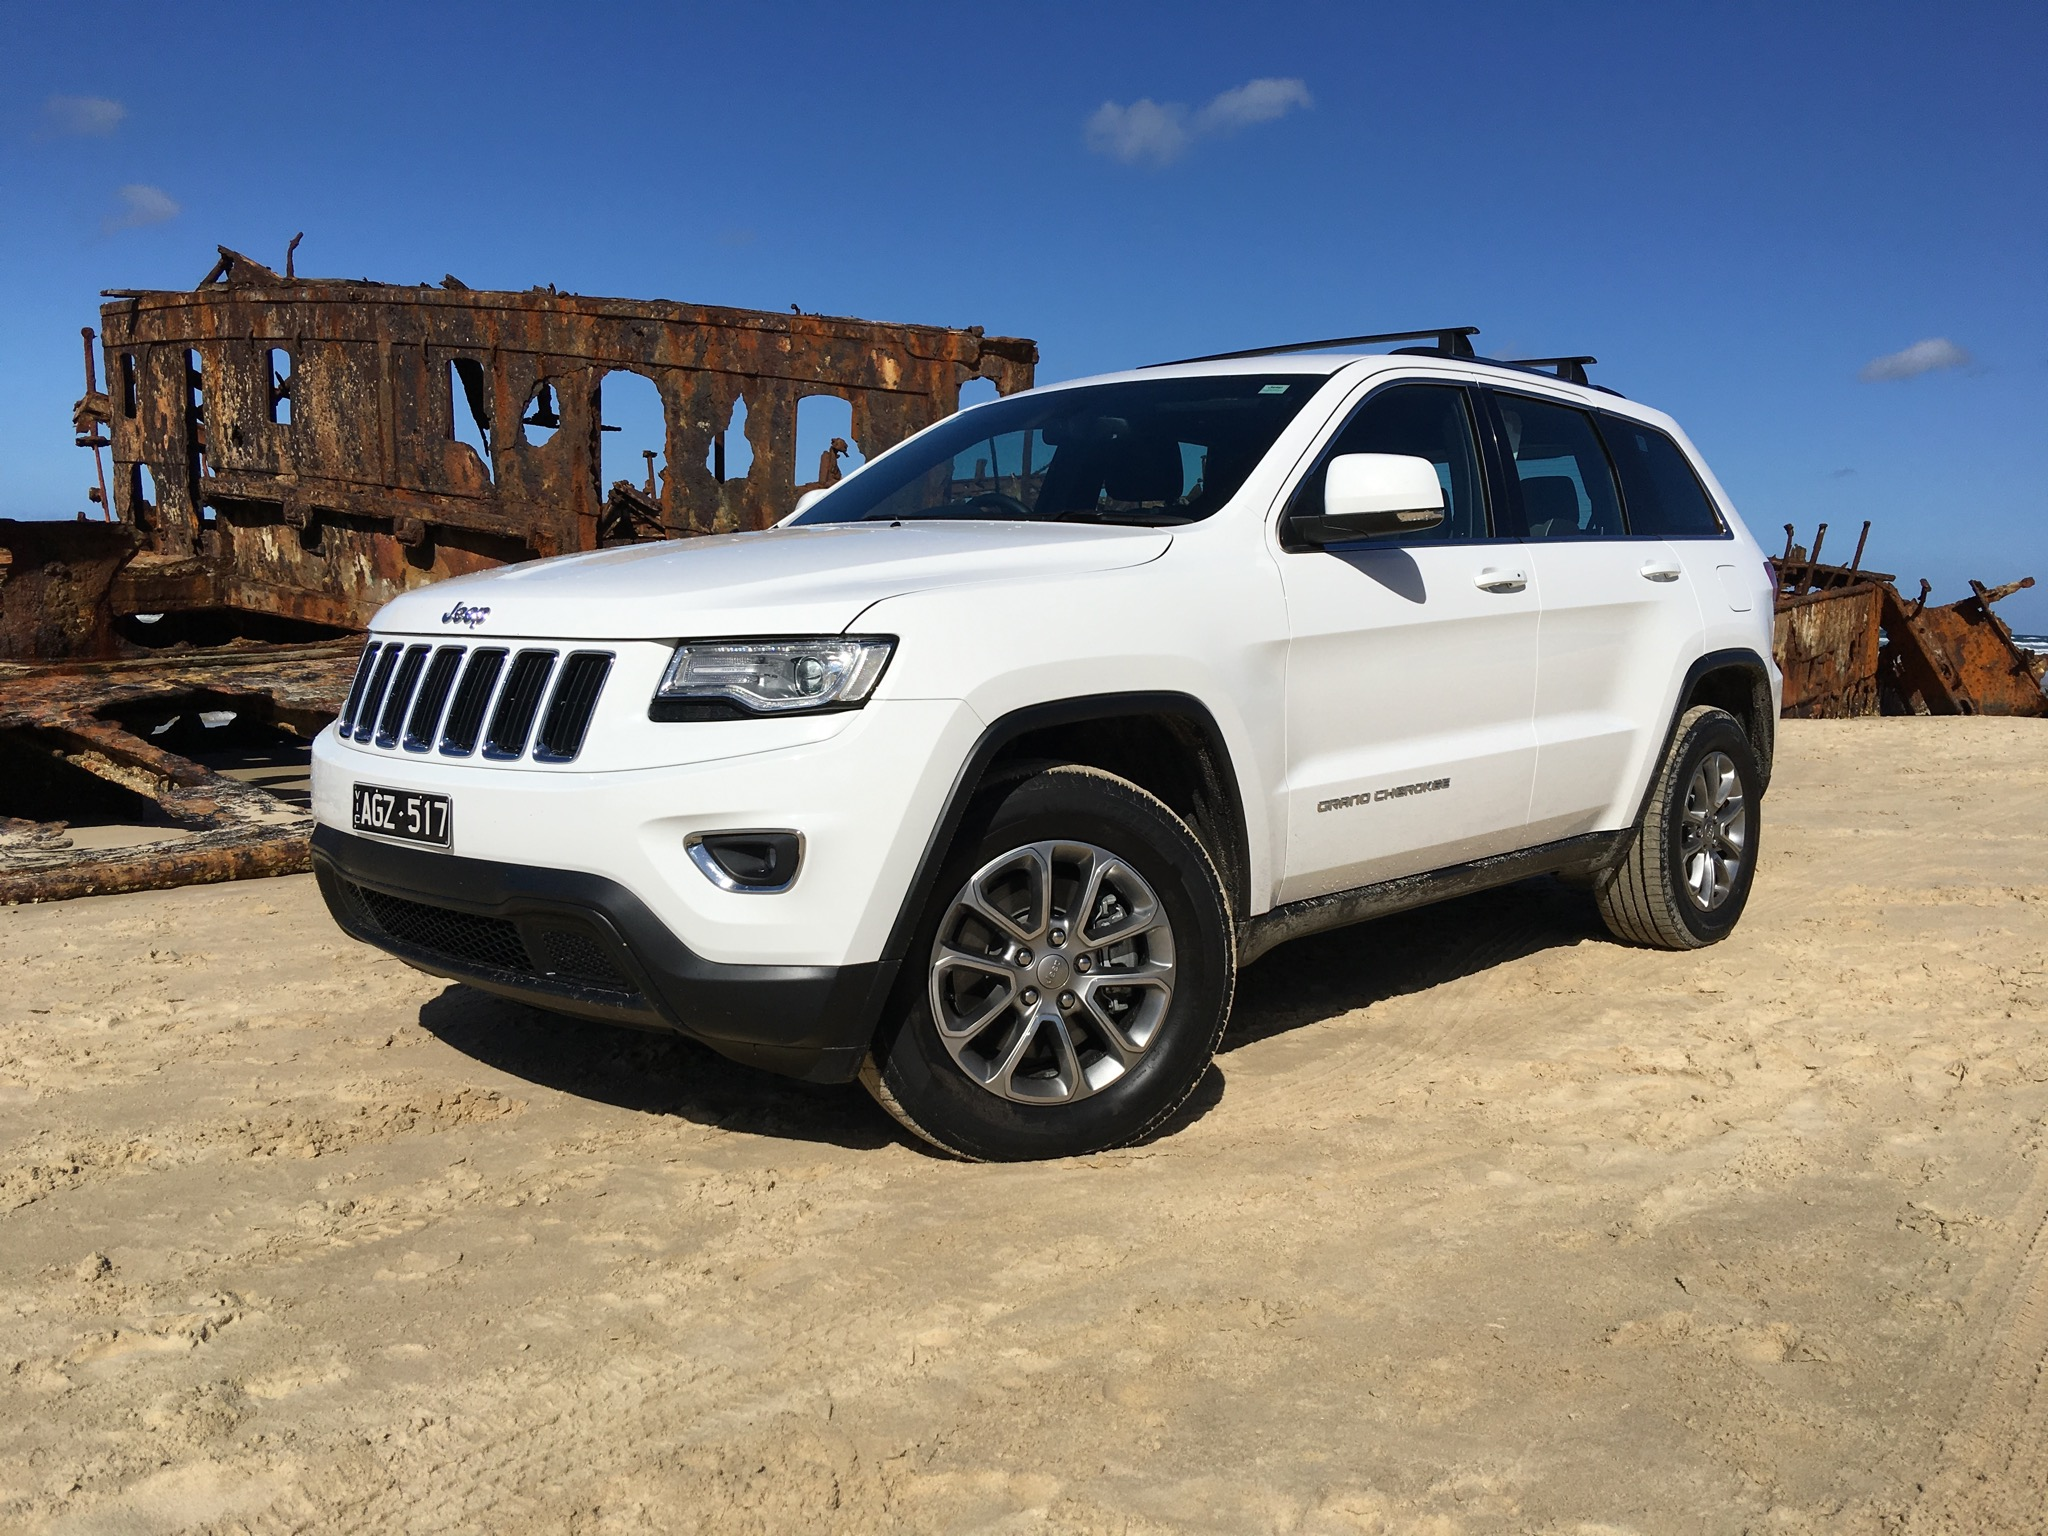 2016 jeep grand cherokee laredo review fraser island weekender. Black Bedroom Furniture Sets. Home Design Ideas